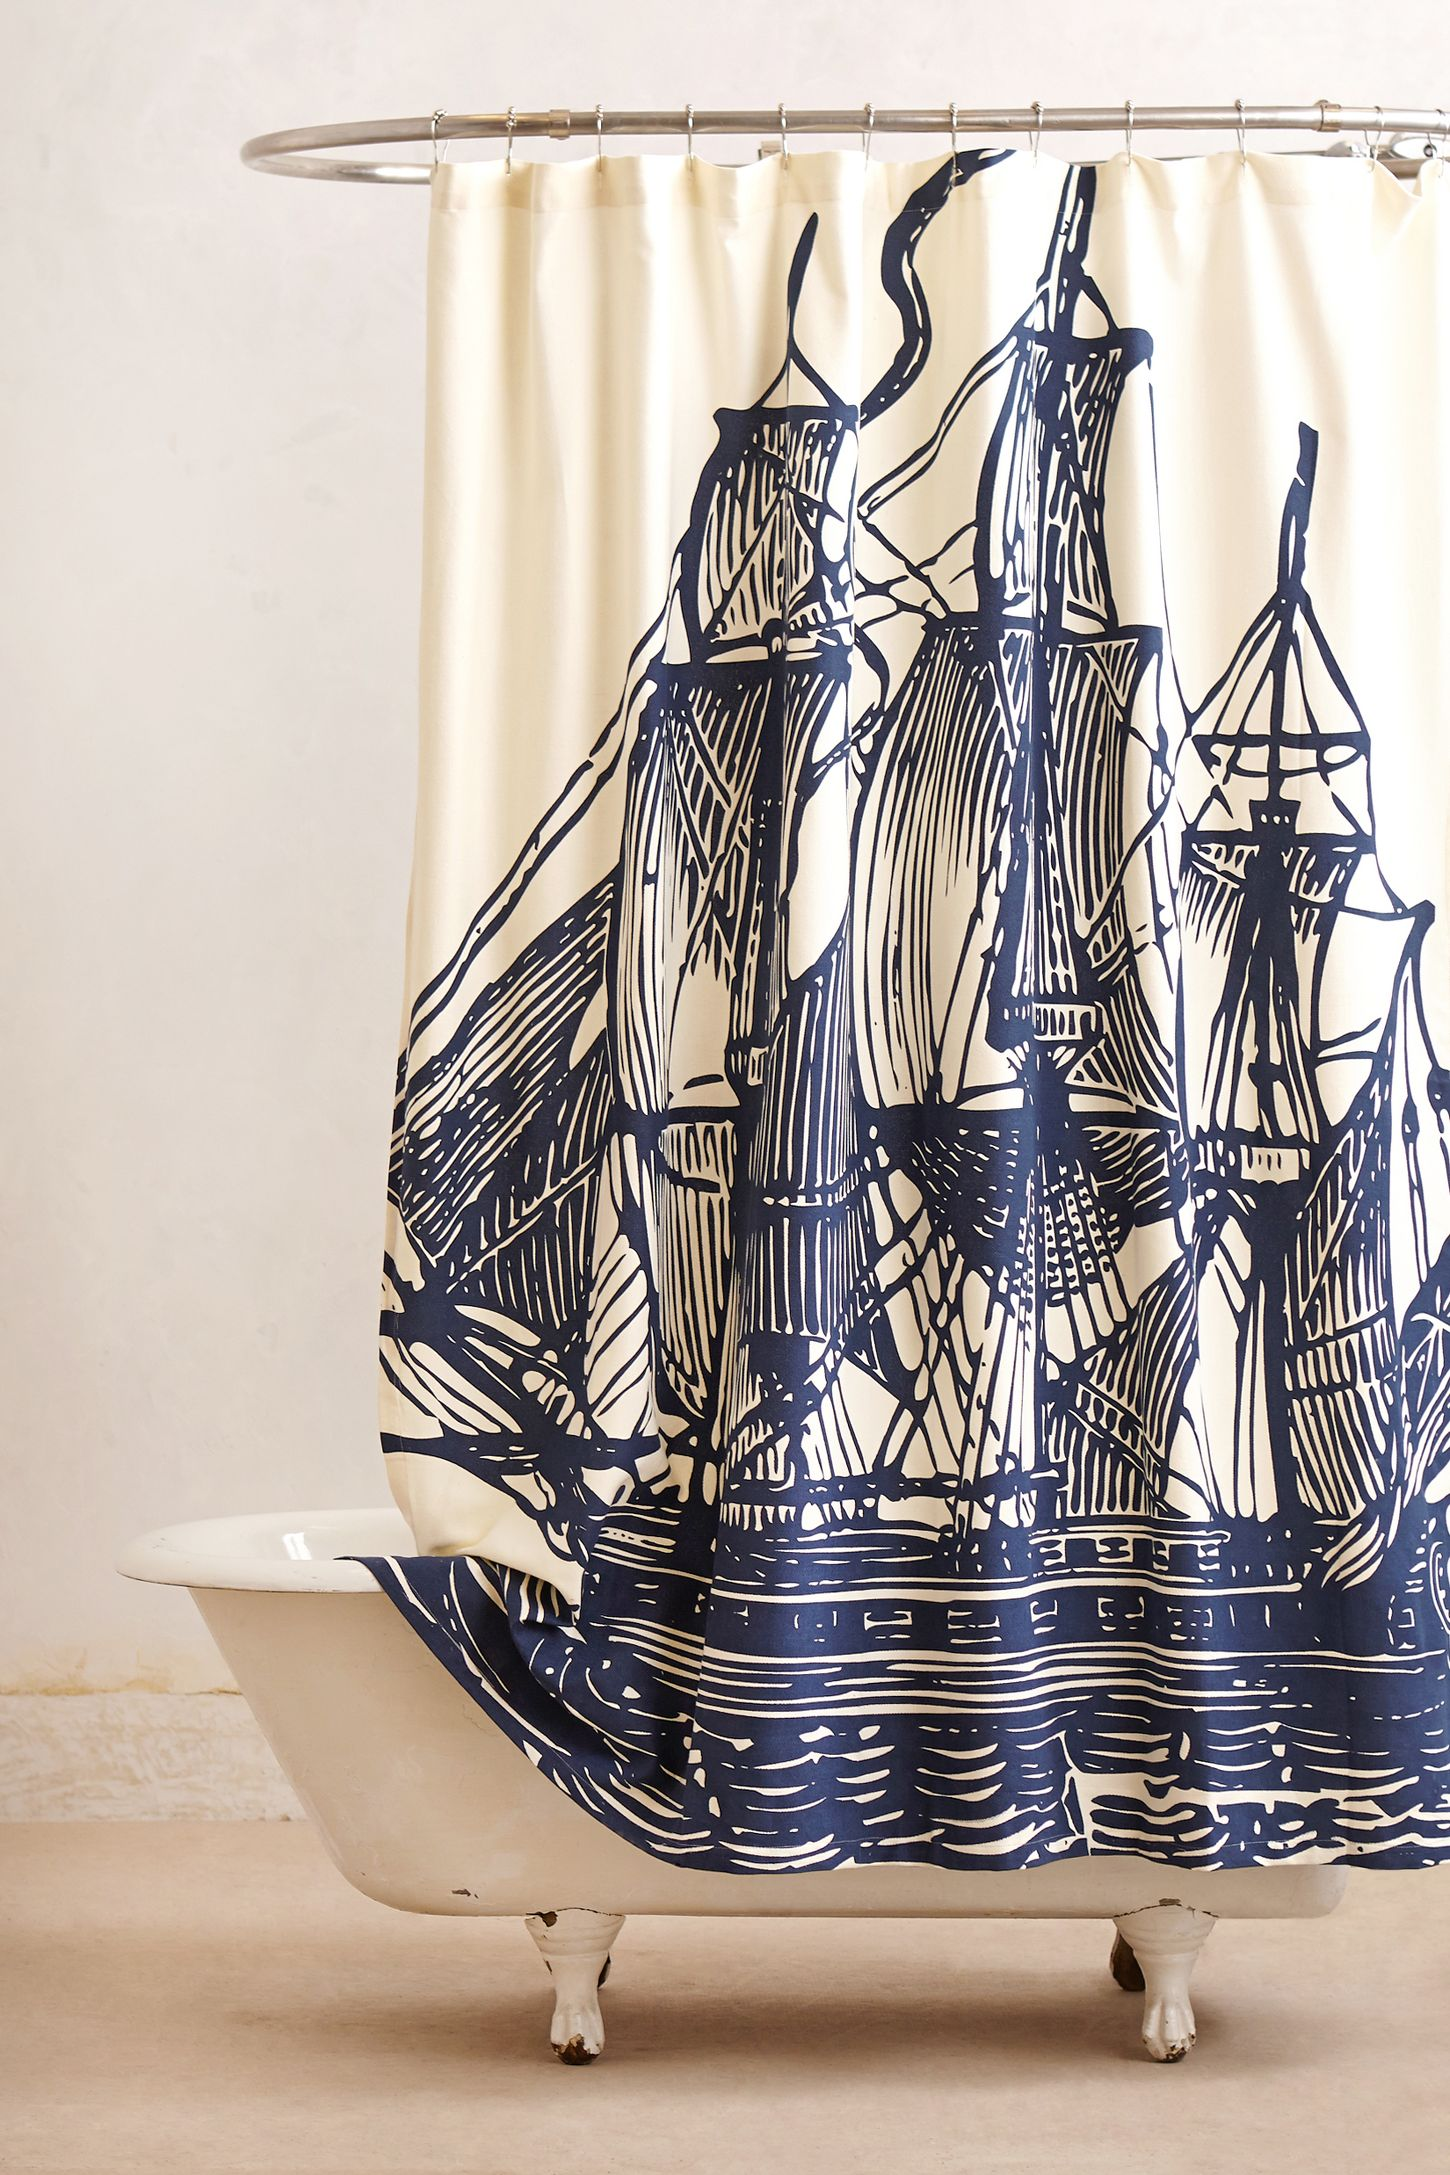 Elizabethan Sails Shower Curtain Anthropologie